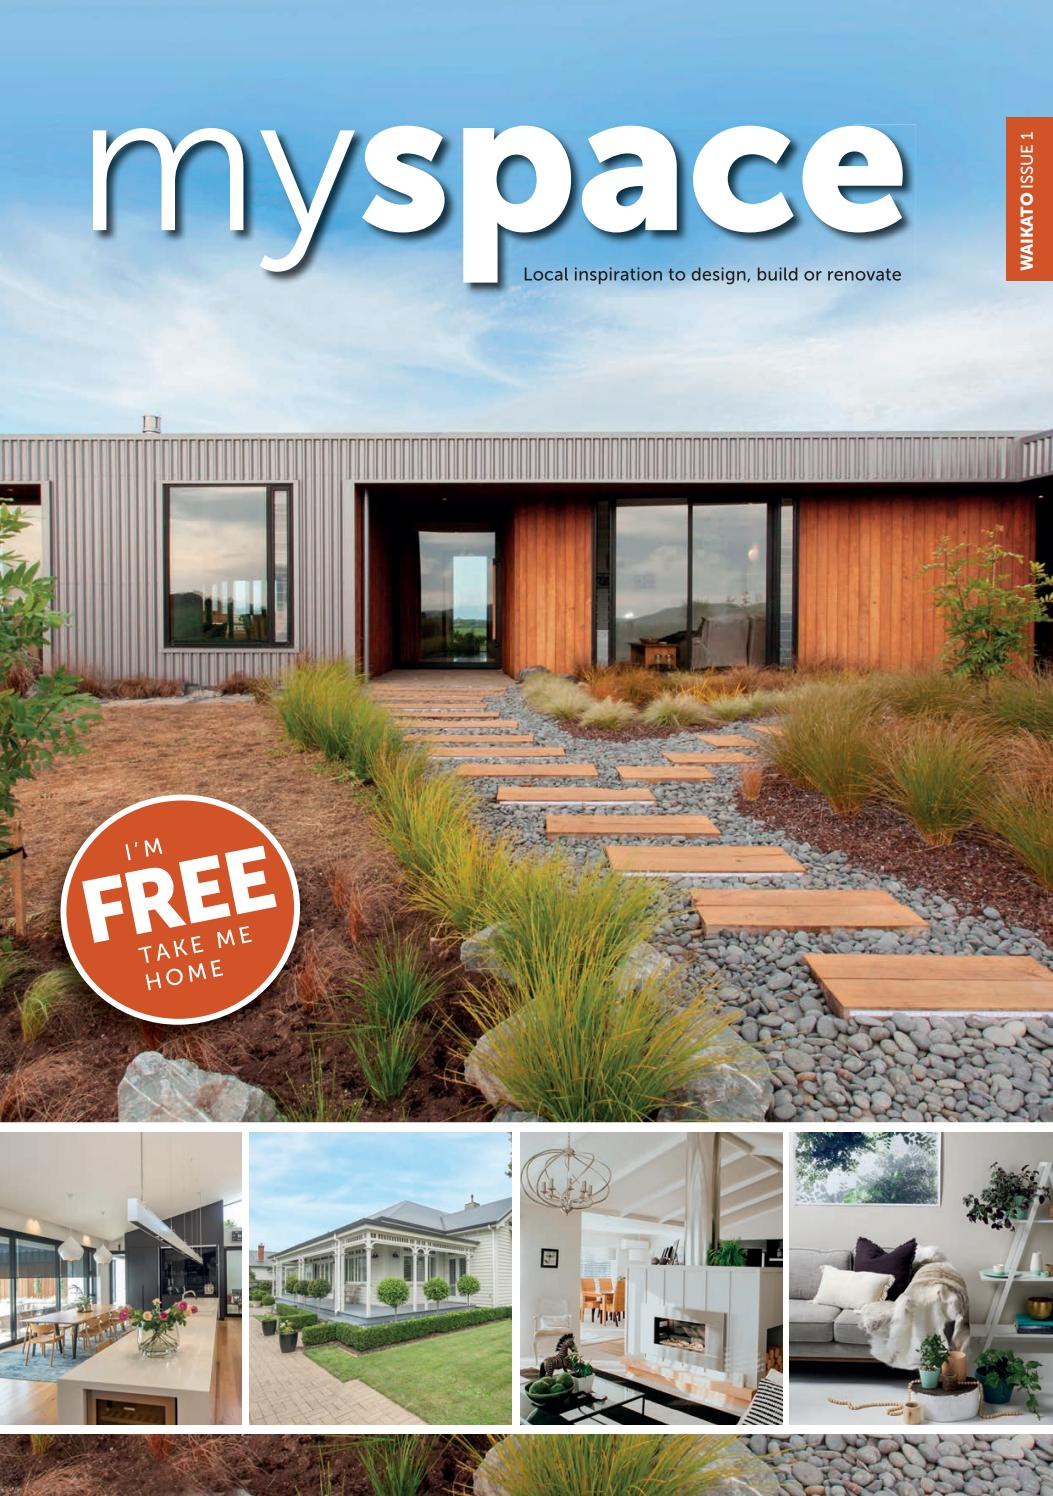 Myspace Waikato May 2018 By Sunlive Issuu Double Pole Single Throw Switch 20 Amp Alfrescoheatingcom